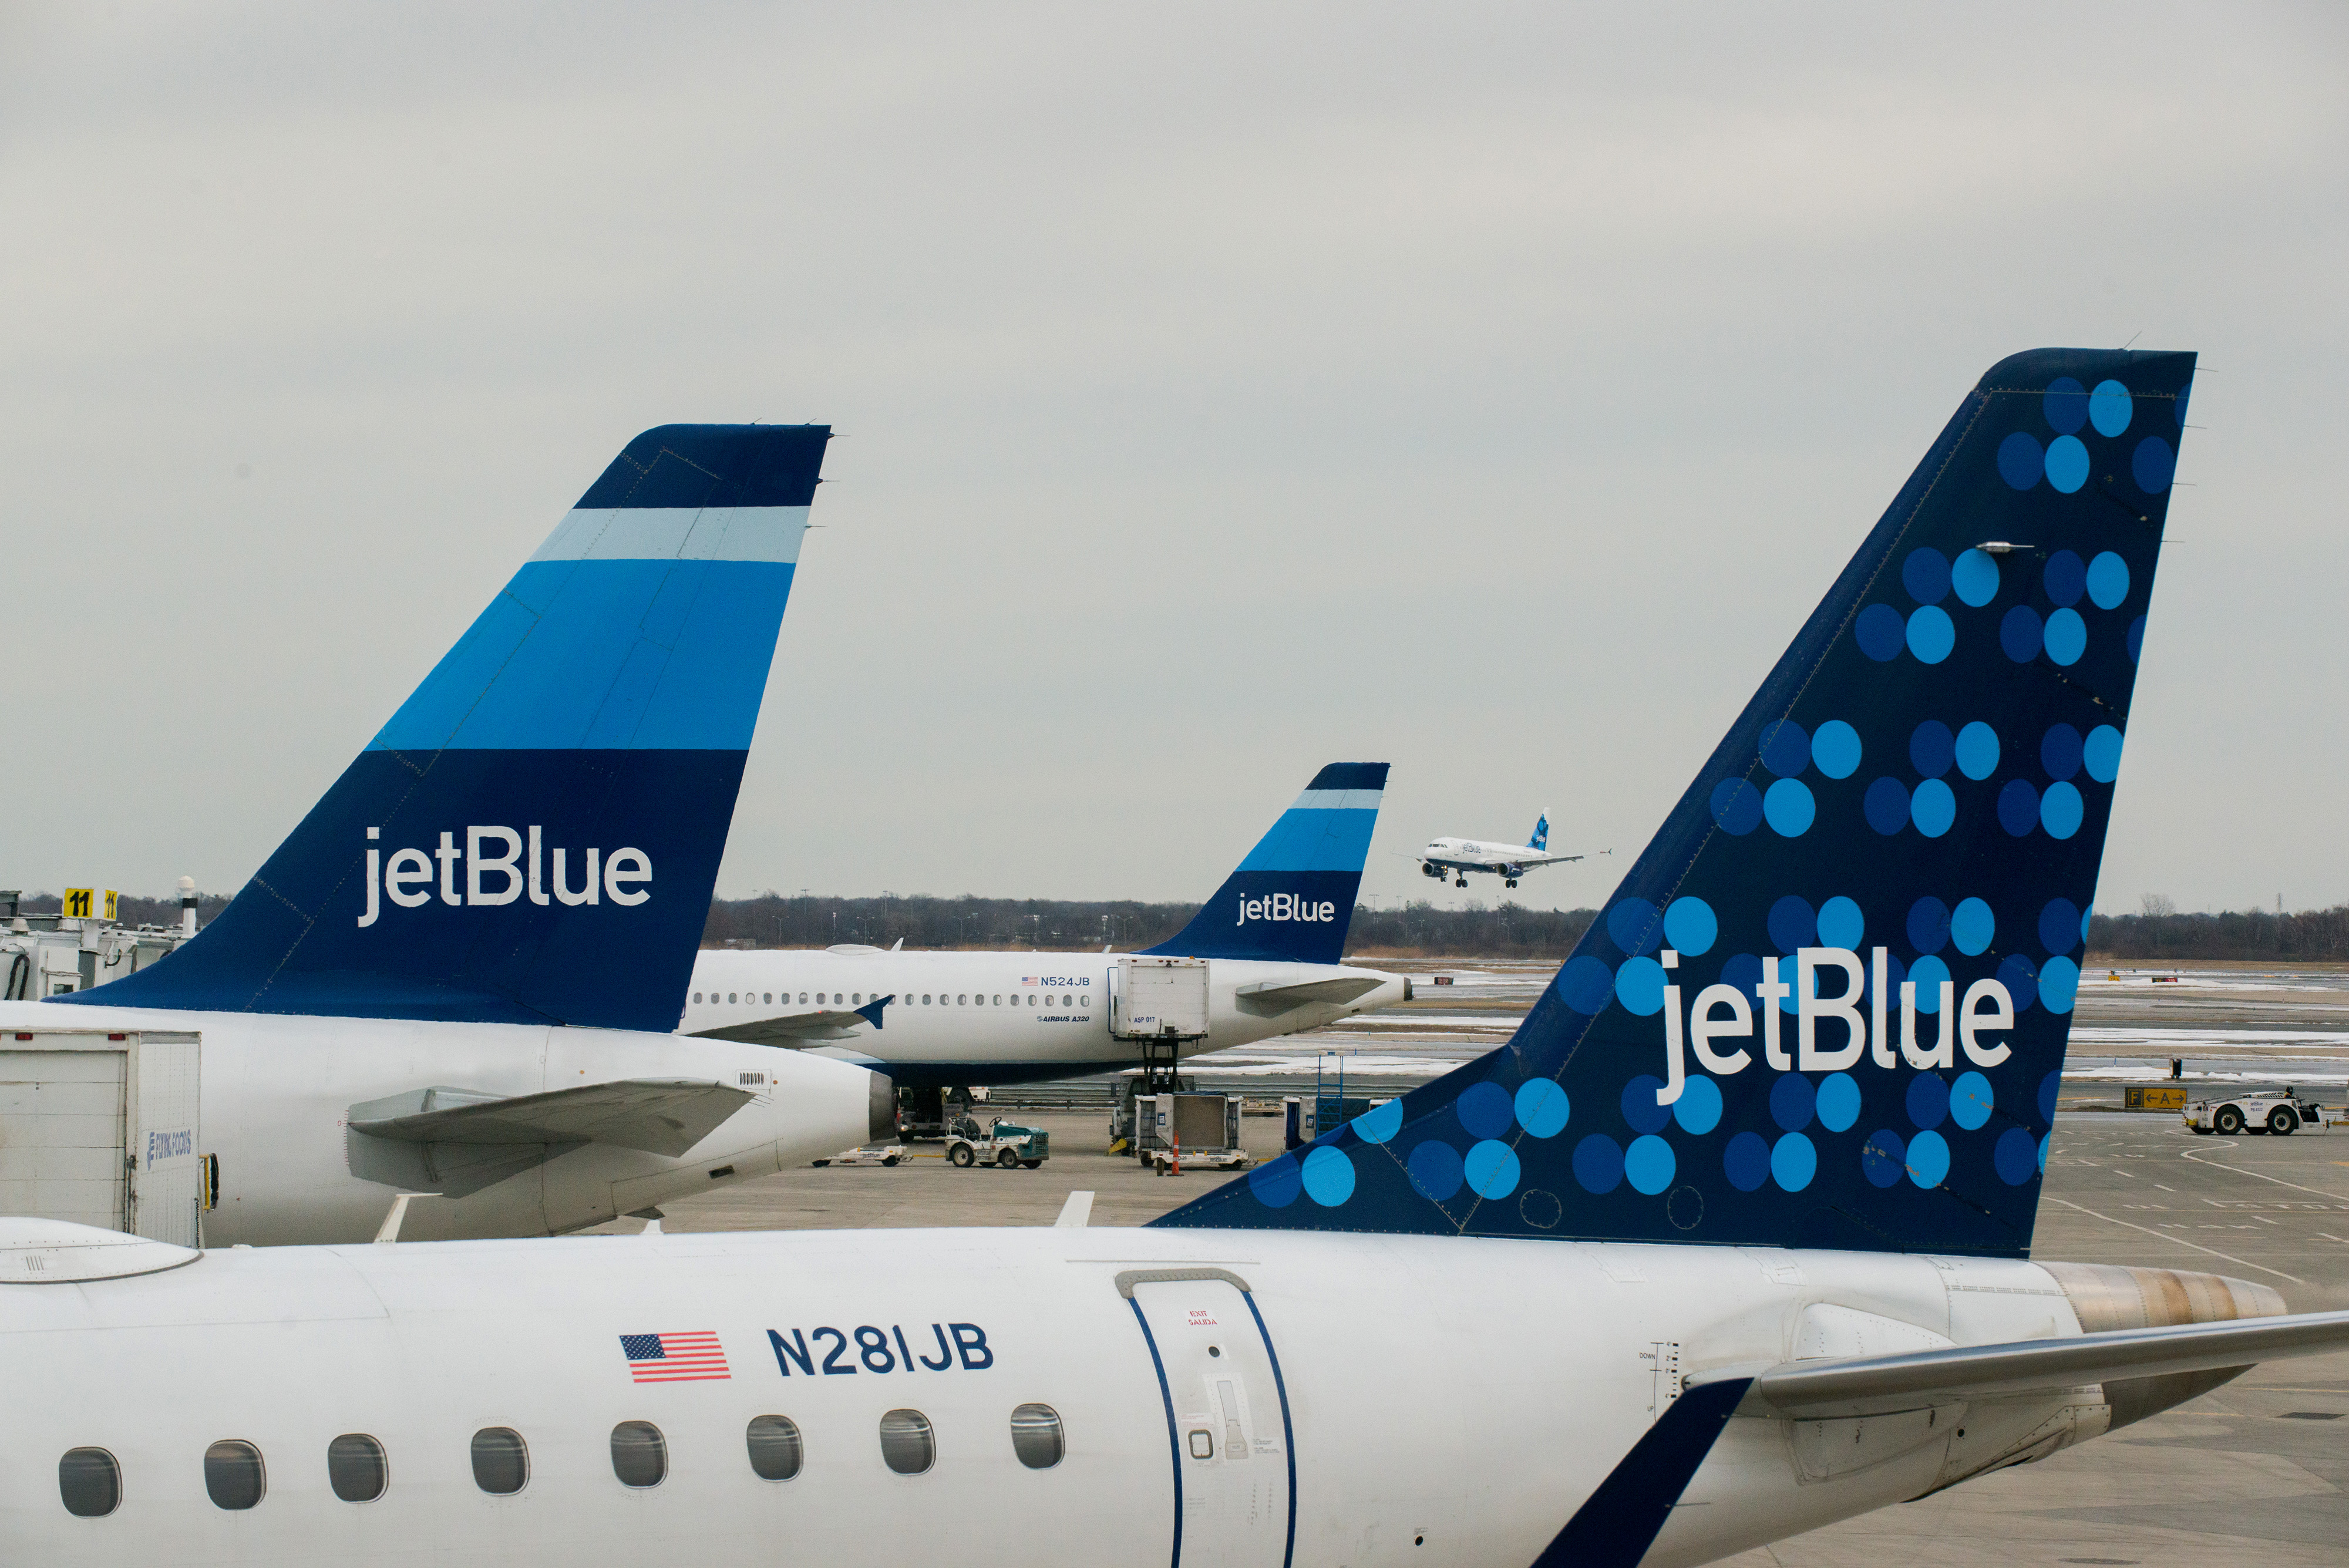 Operations At JetBlue Airways Corp.'s Terminal 5 Ahead of Earnings Figures